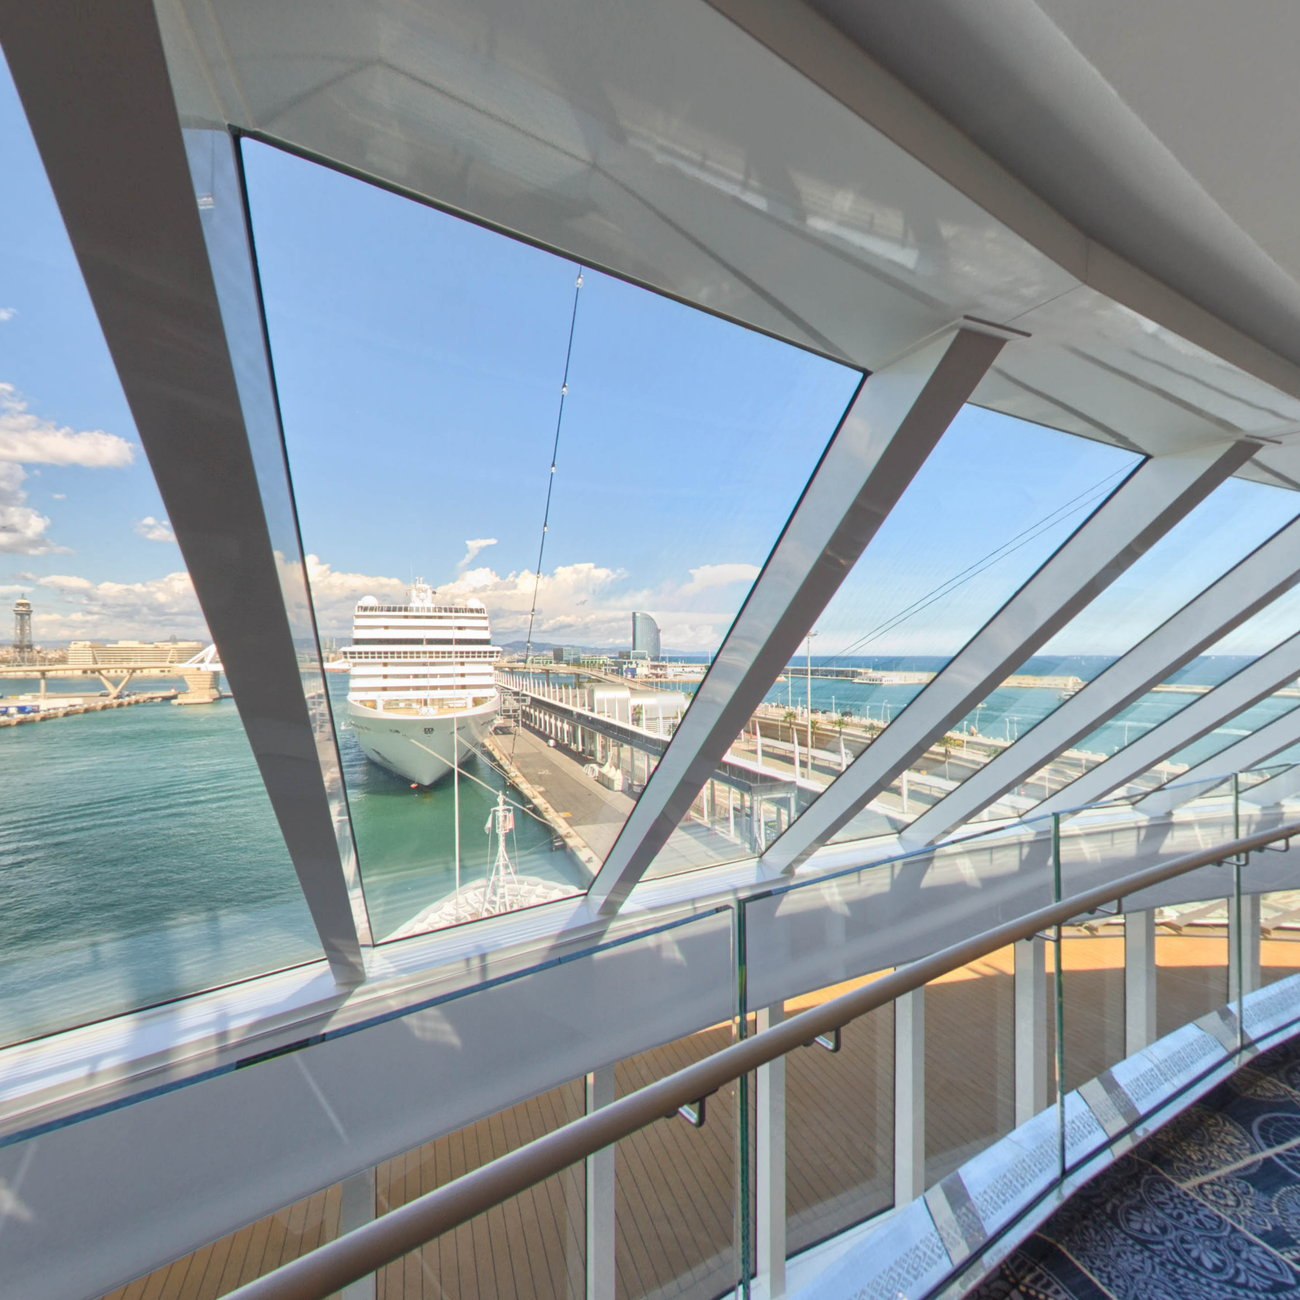 Panorama of Explorers' Lounge on Viking Sky